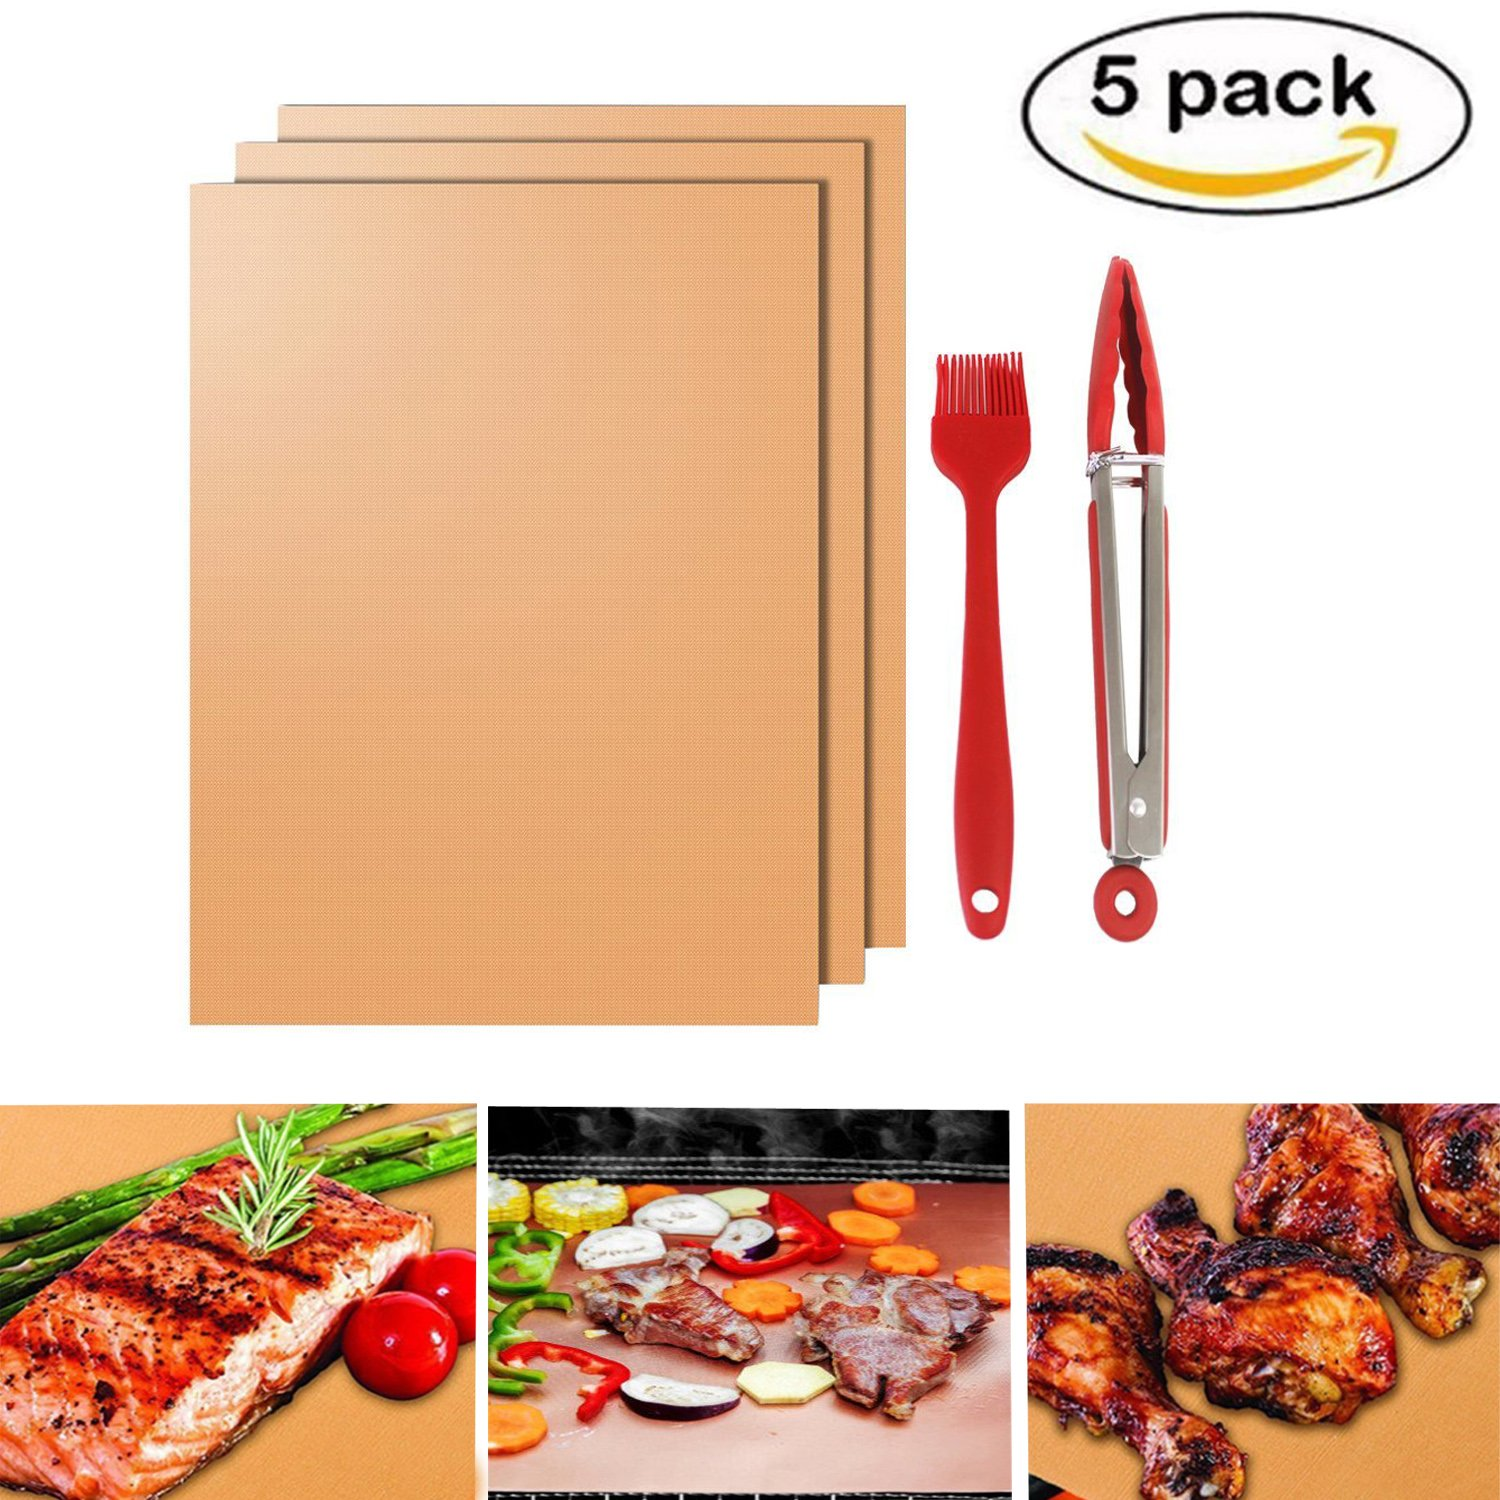 Bioeilife BBQ Mat Set - 3 Pcs Non Stick Grill Mats,1 Premium 9'' Stainless Steel Silicone Kitchen Tong and 1 Silicone Brush (Copper)